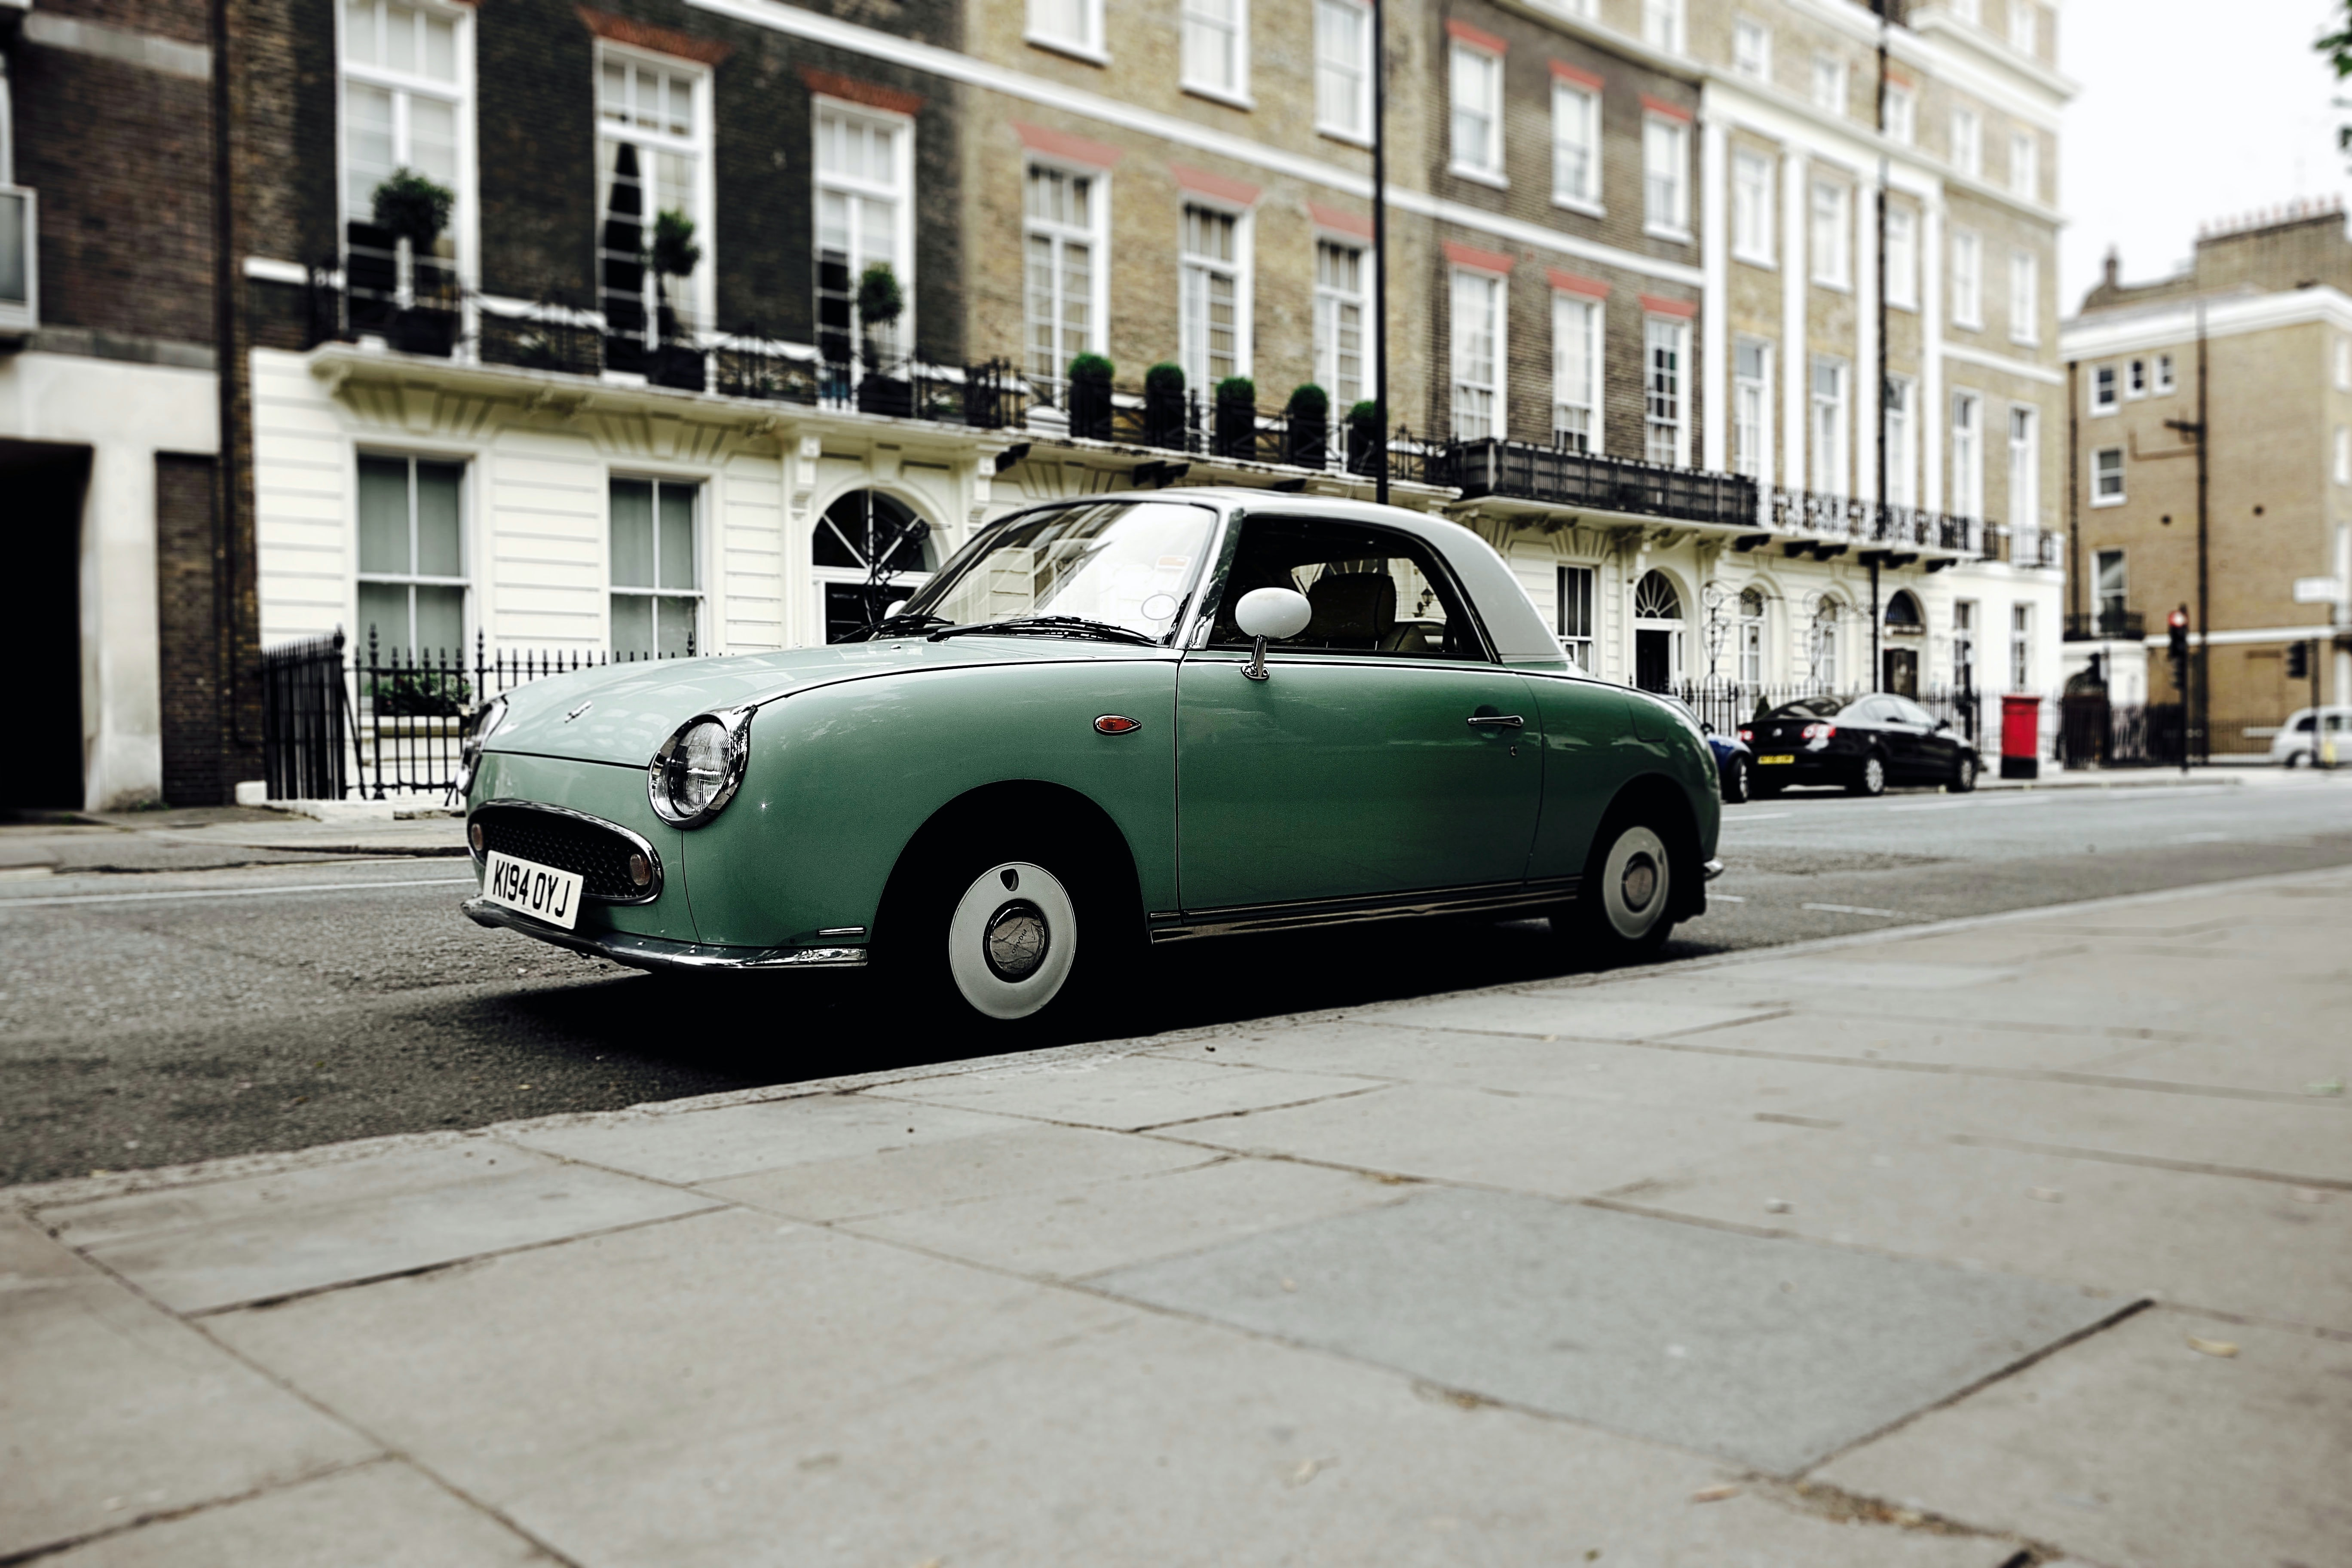 Green vintage car parked on the streets of a European neighborhood